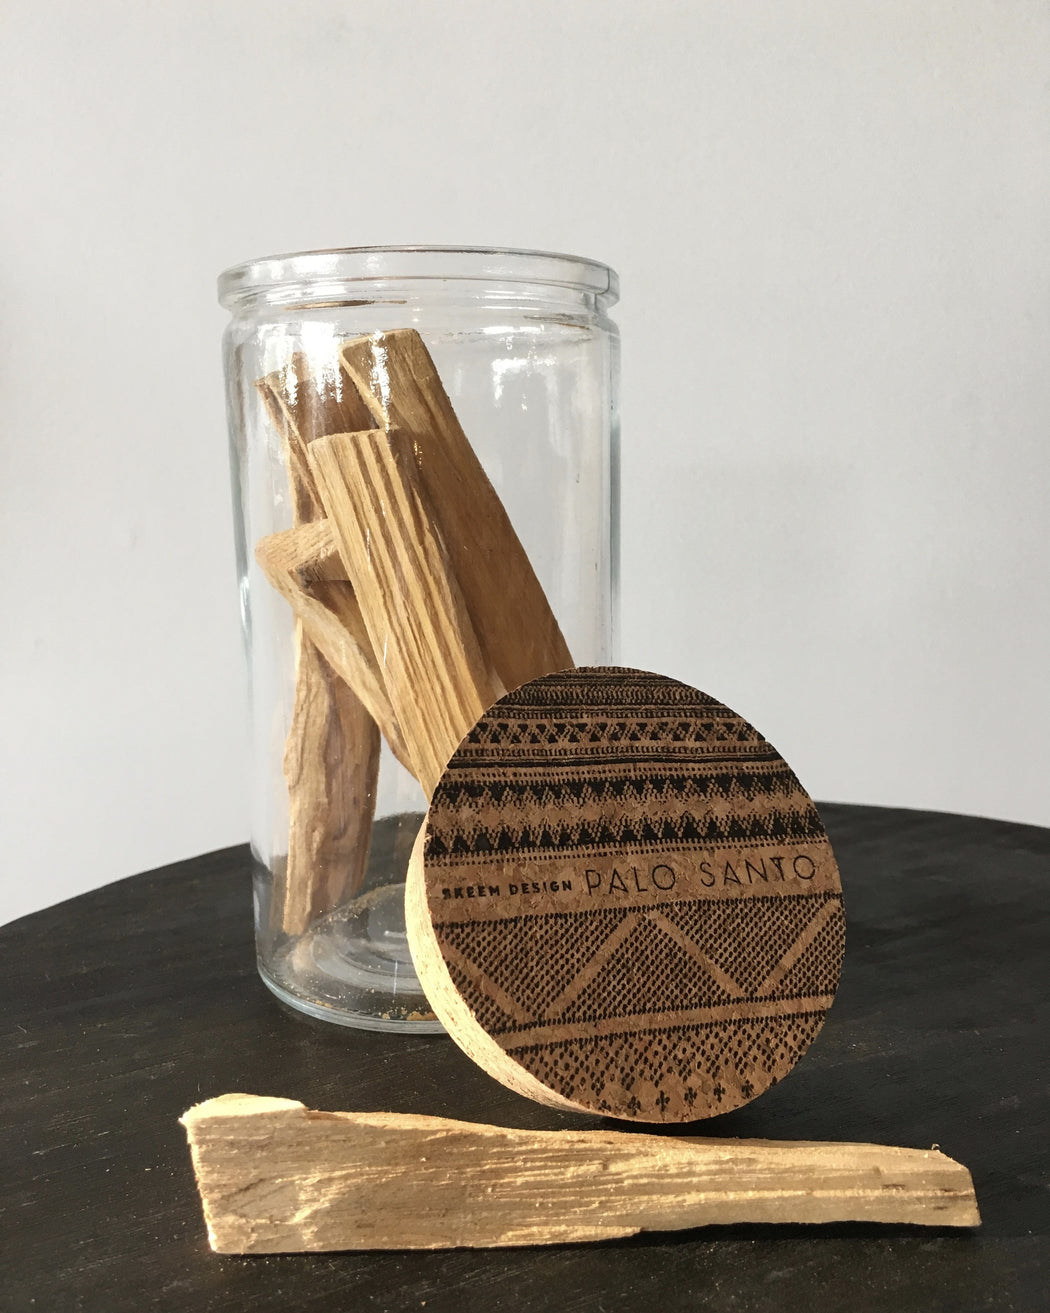 Palo Santo scented sticks in container